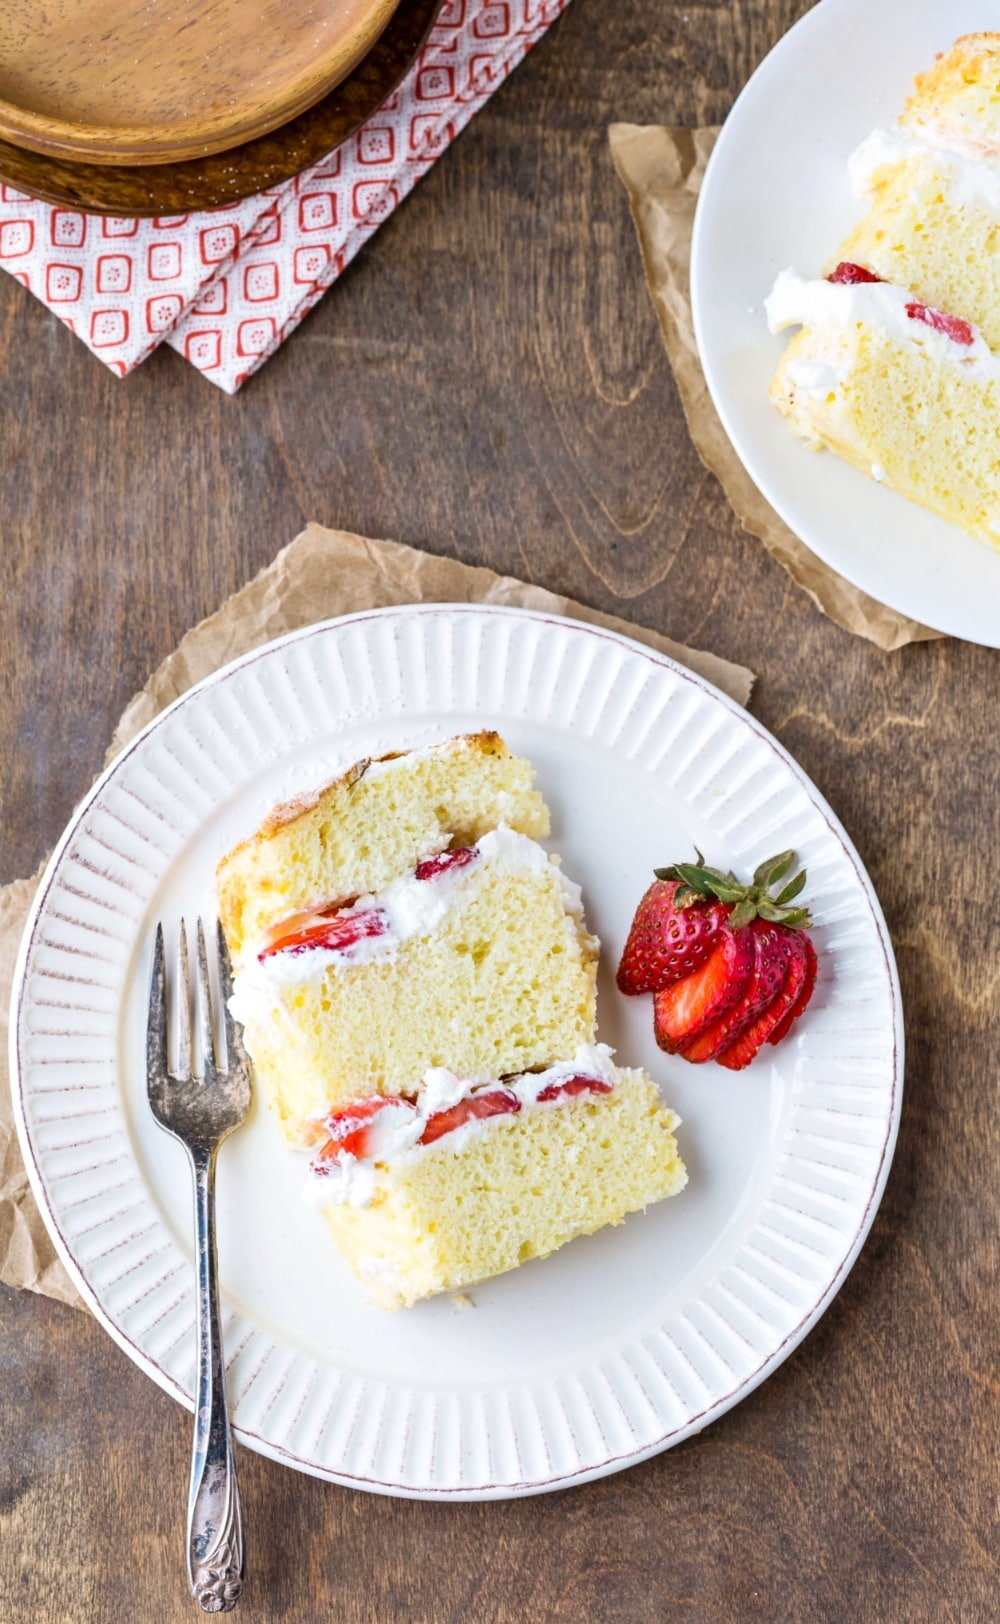 Slice of strawberry shortcake cake on a white plate next to a fork and a strawberry